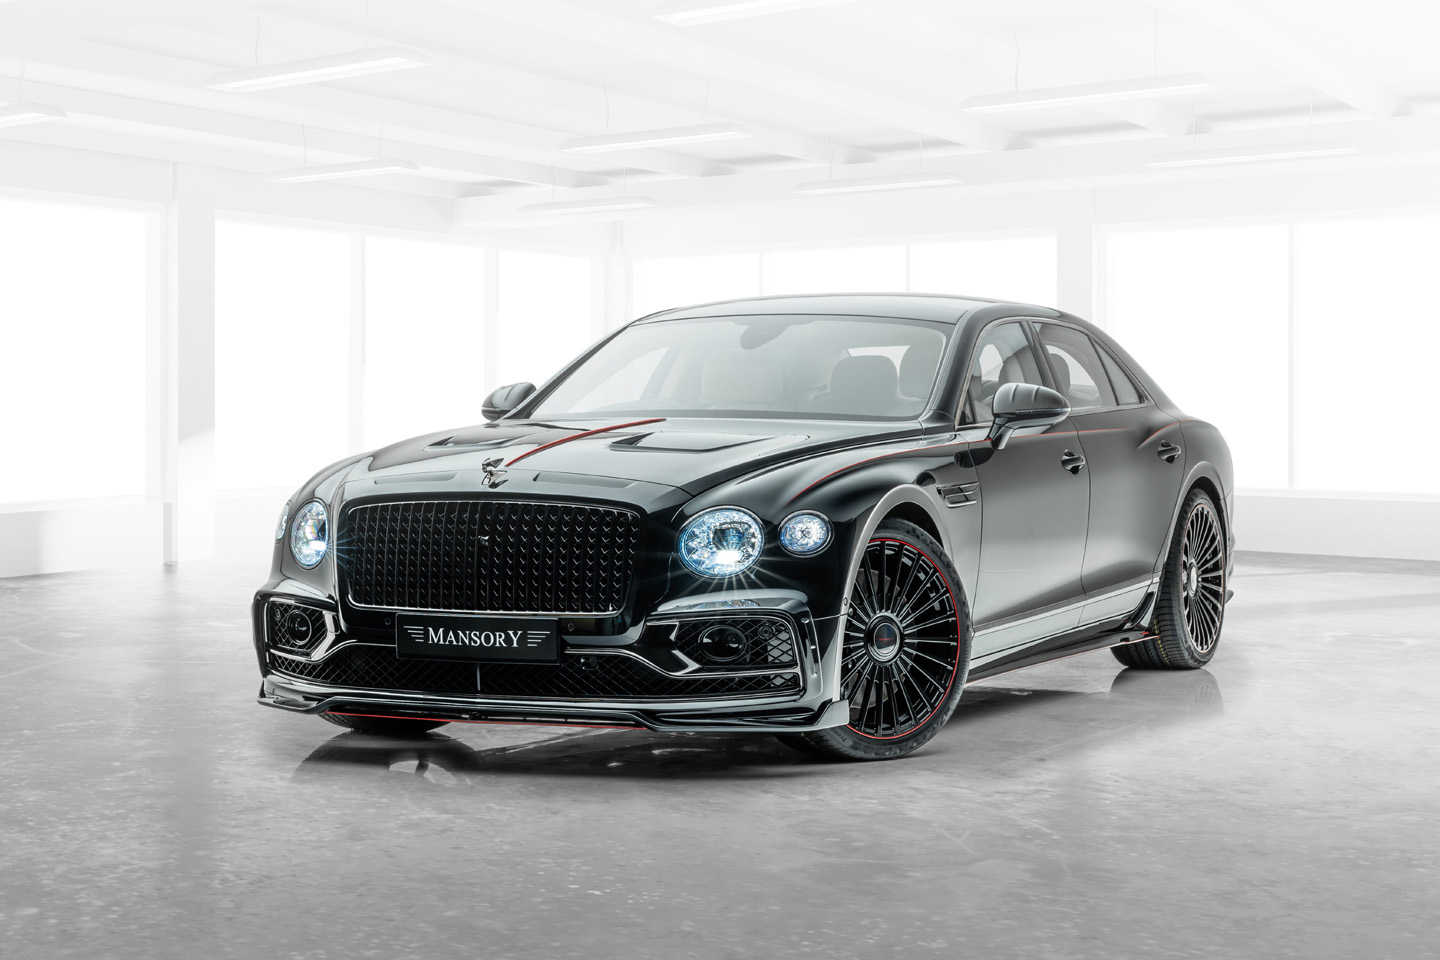 Mansory Bentley Flying Spur 2020 1